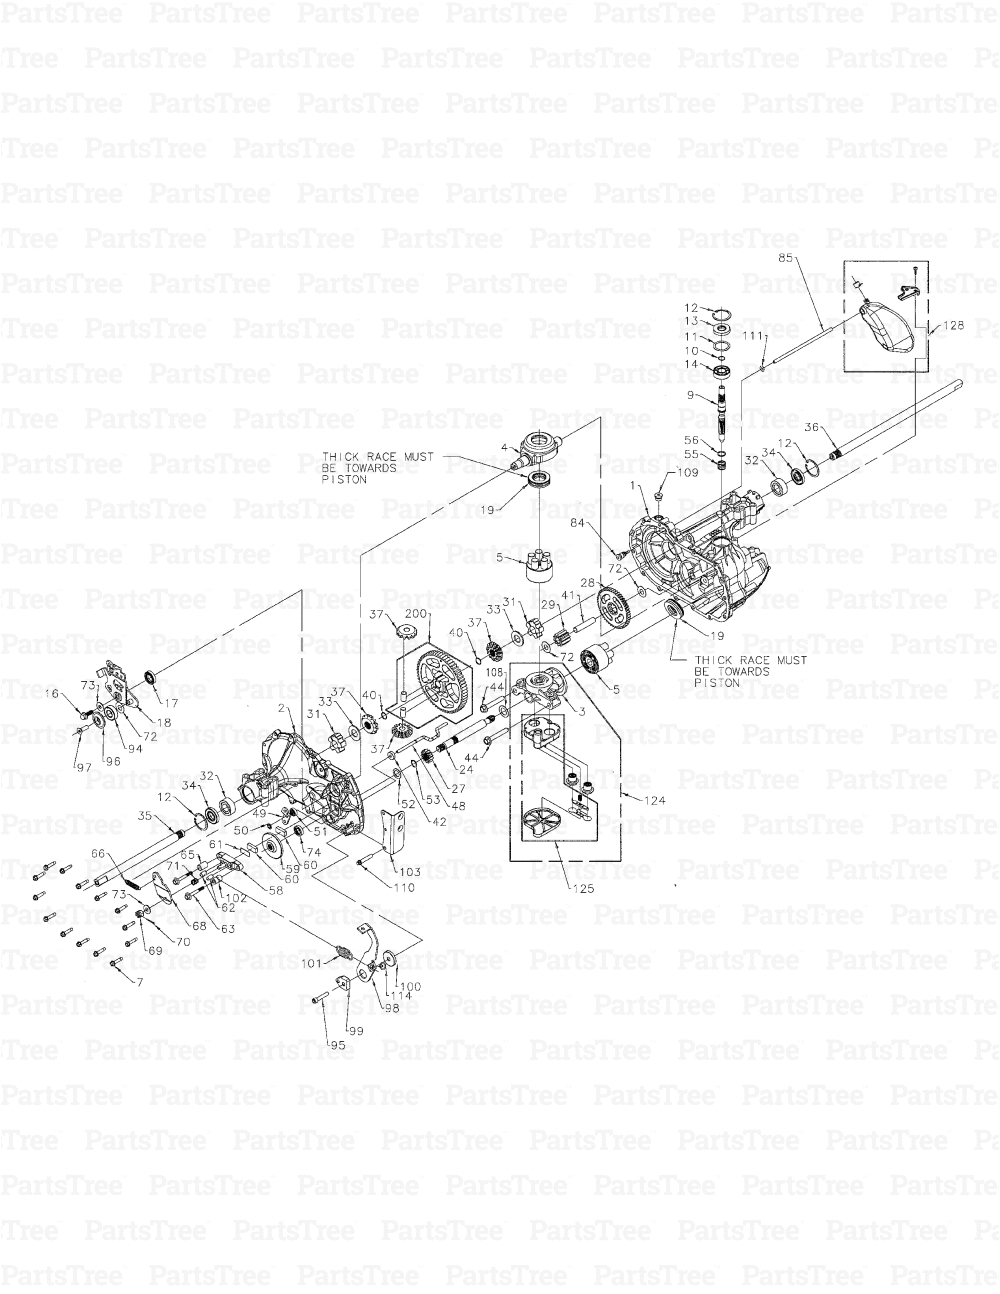 cub cadet ltx1046 13wp91at010 cub cadet lawn tractor 2010 transmission hydrostatic diagram and parts list partstree com